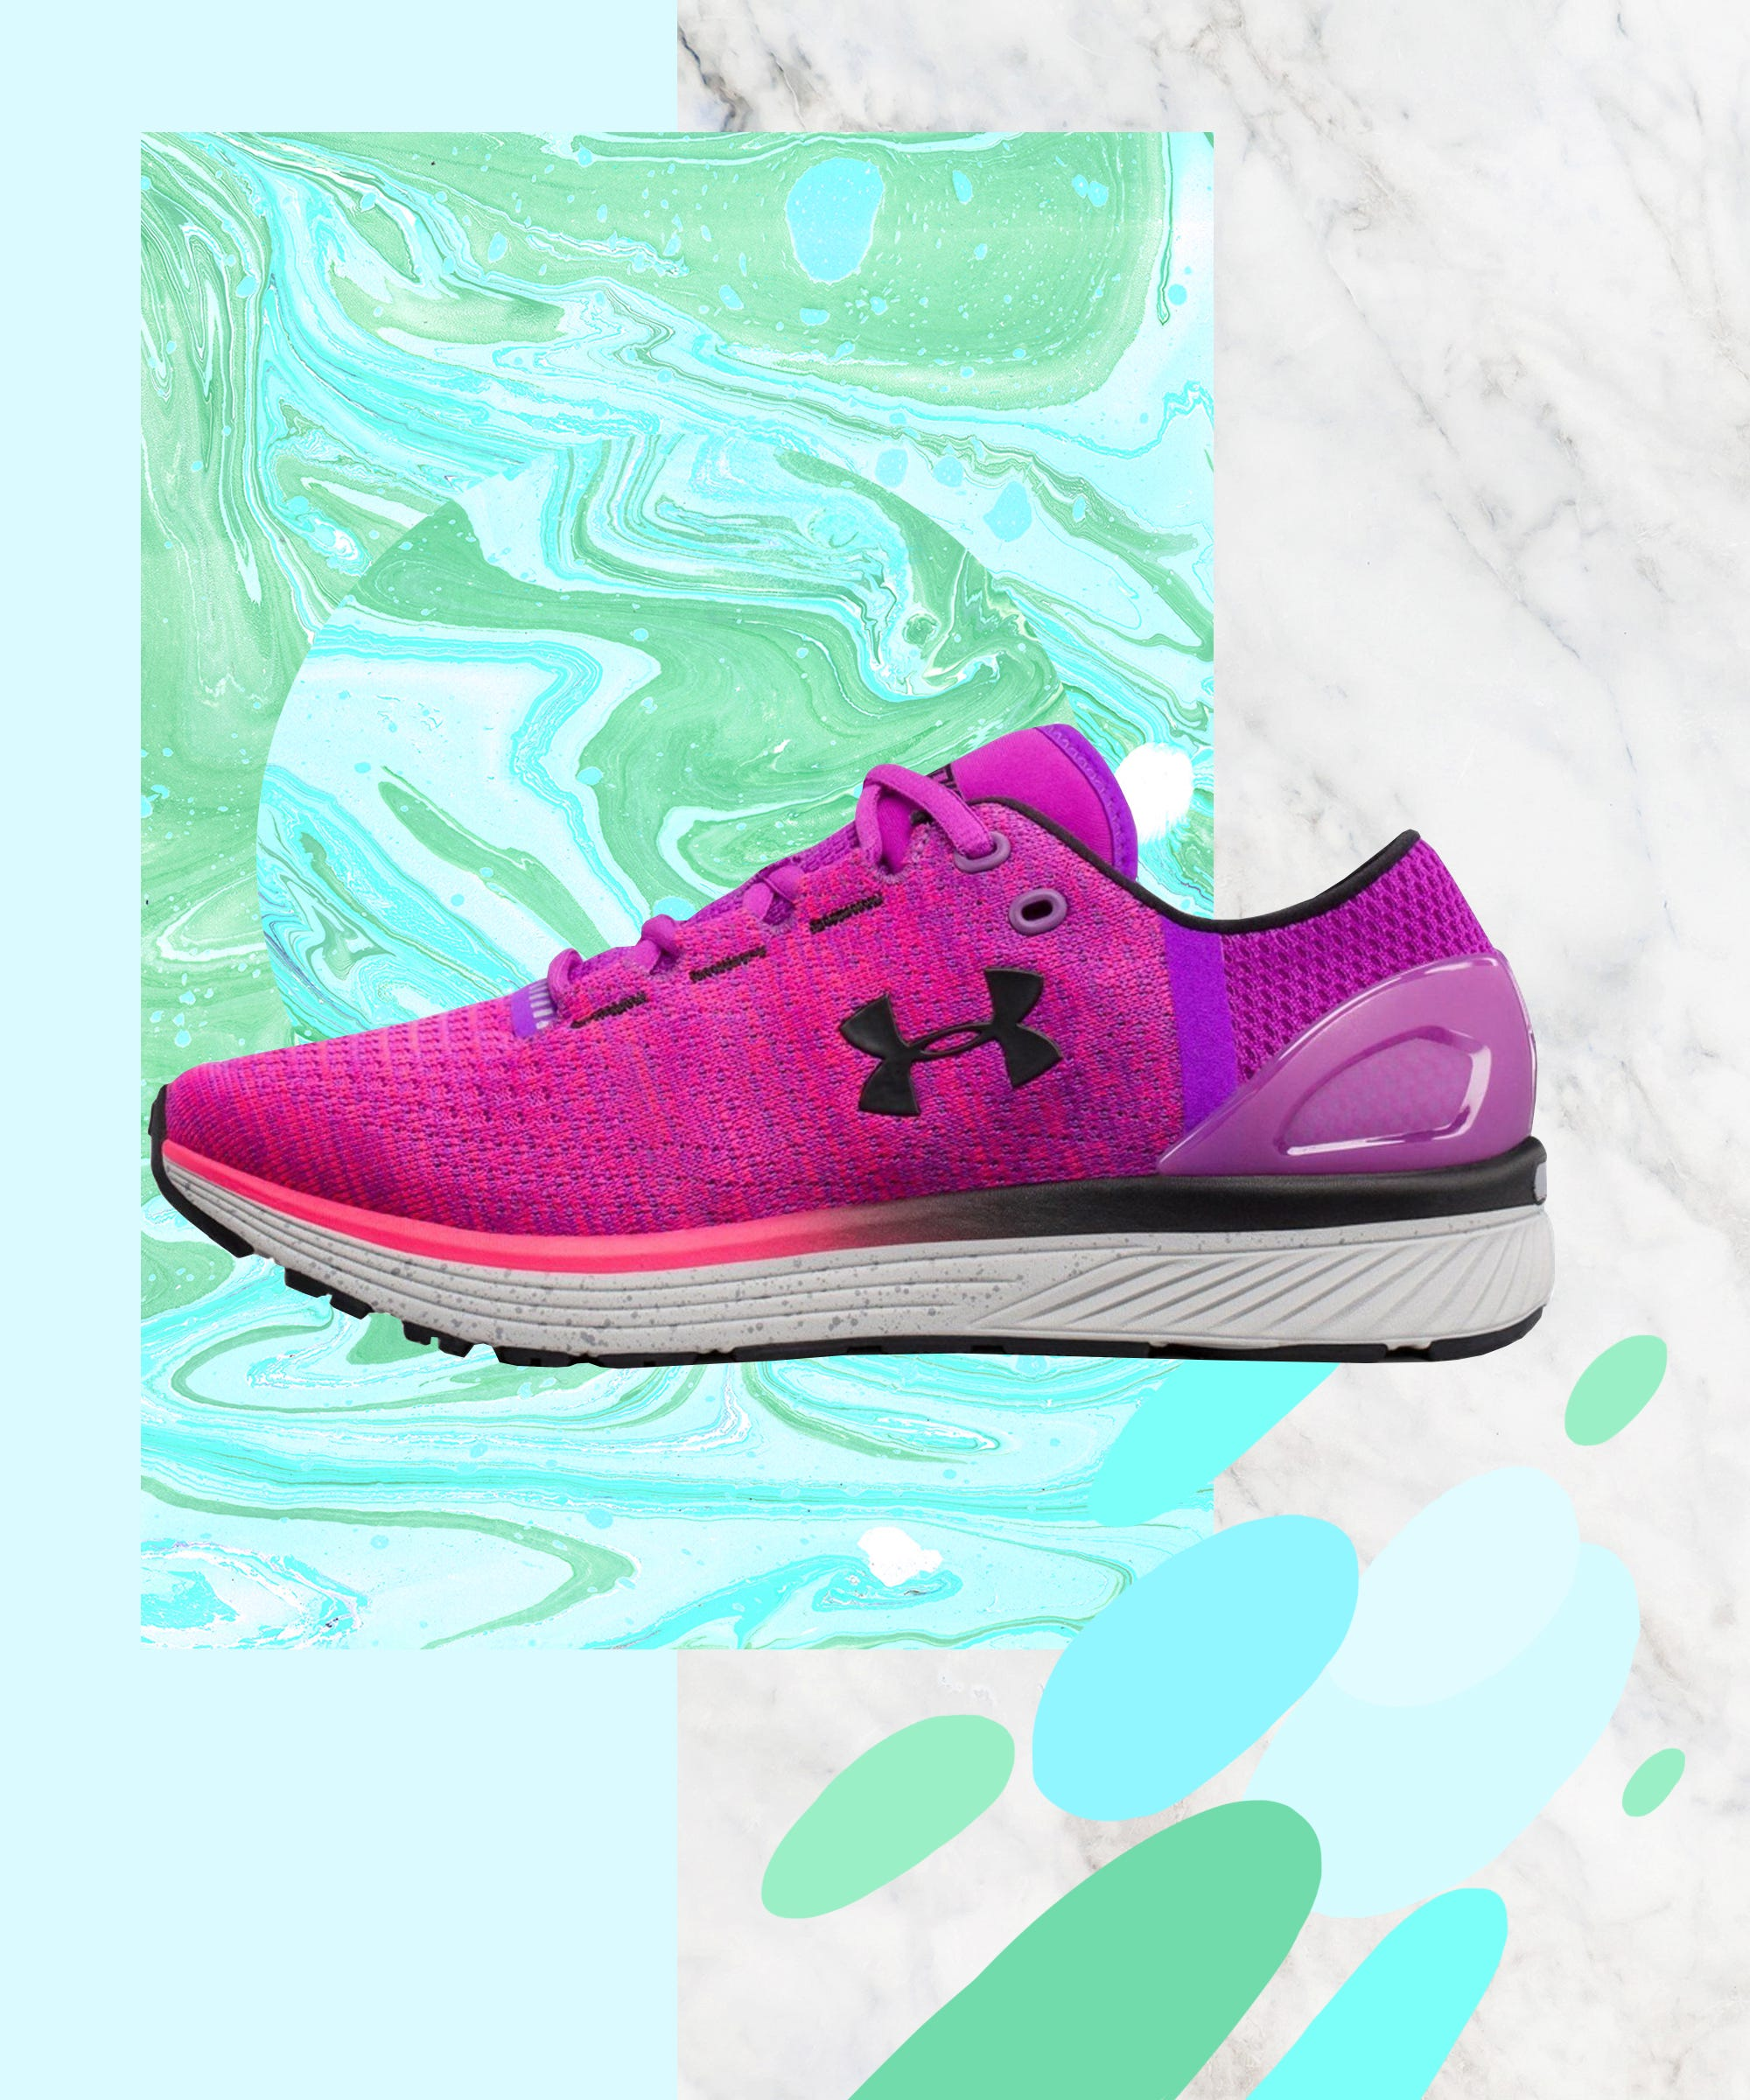 10 Workout Sneakers That Cost Less Than $100